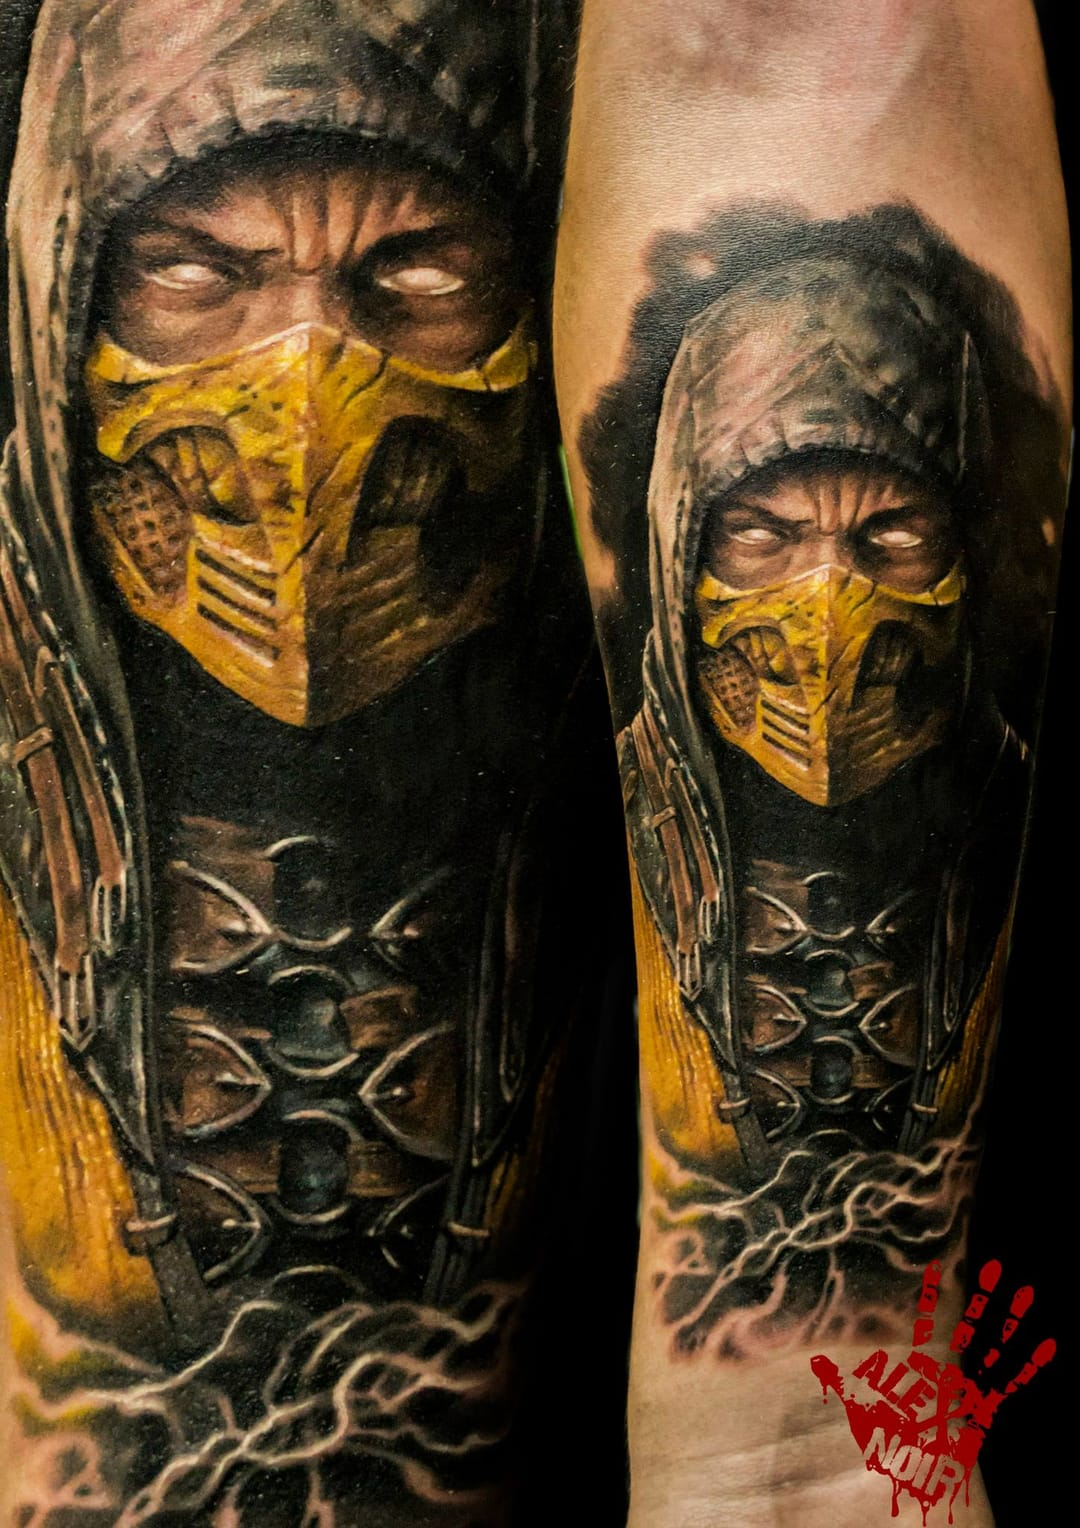 Scorpion is perhaps the most recognized icon of the game and this realism tattoo kicks ass!